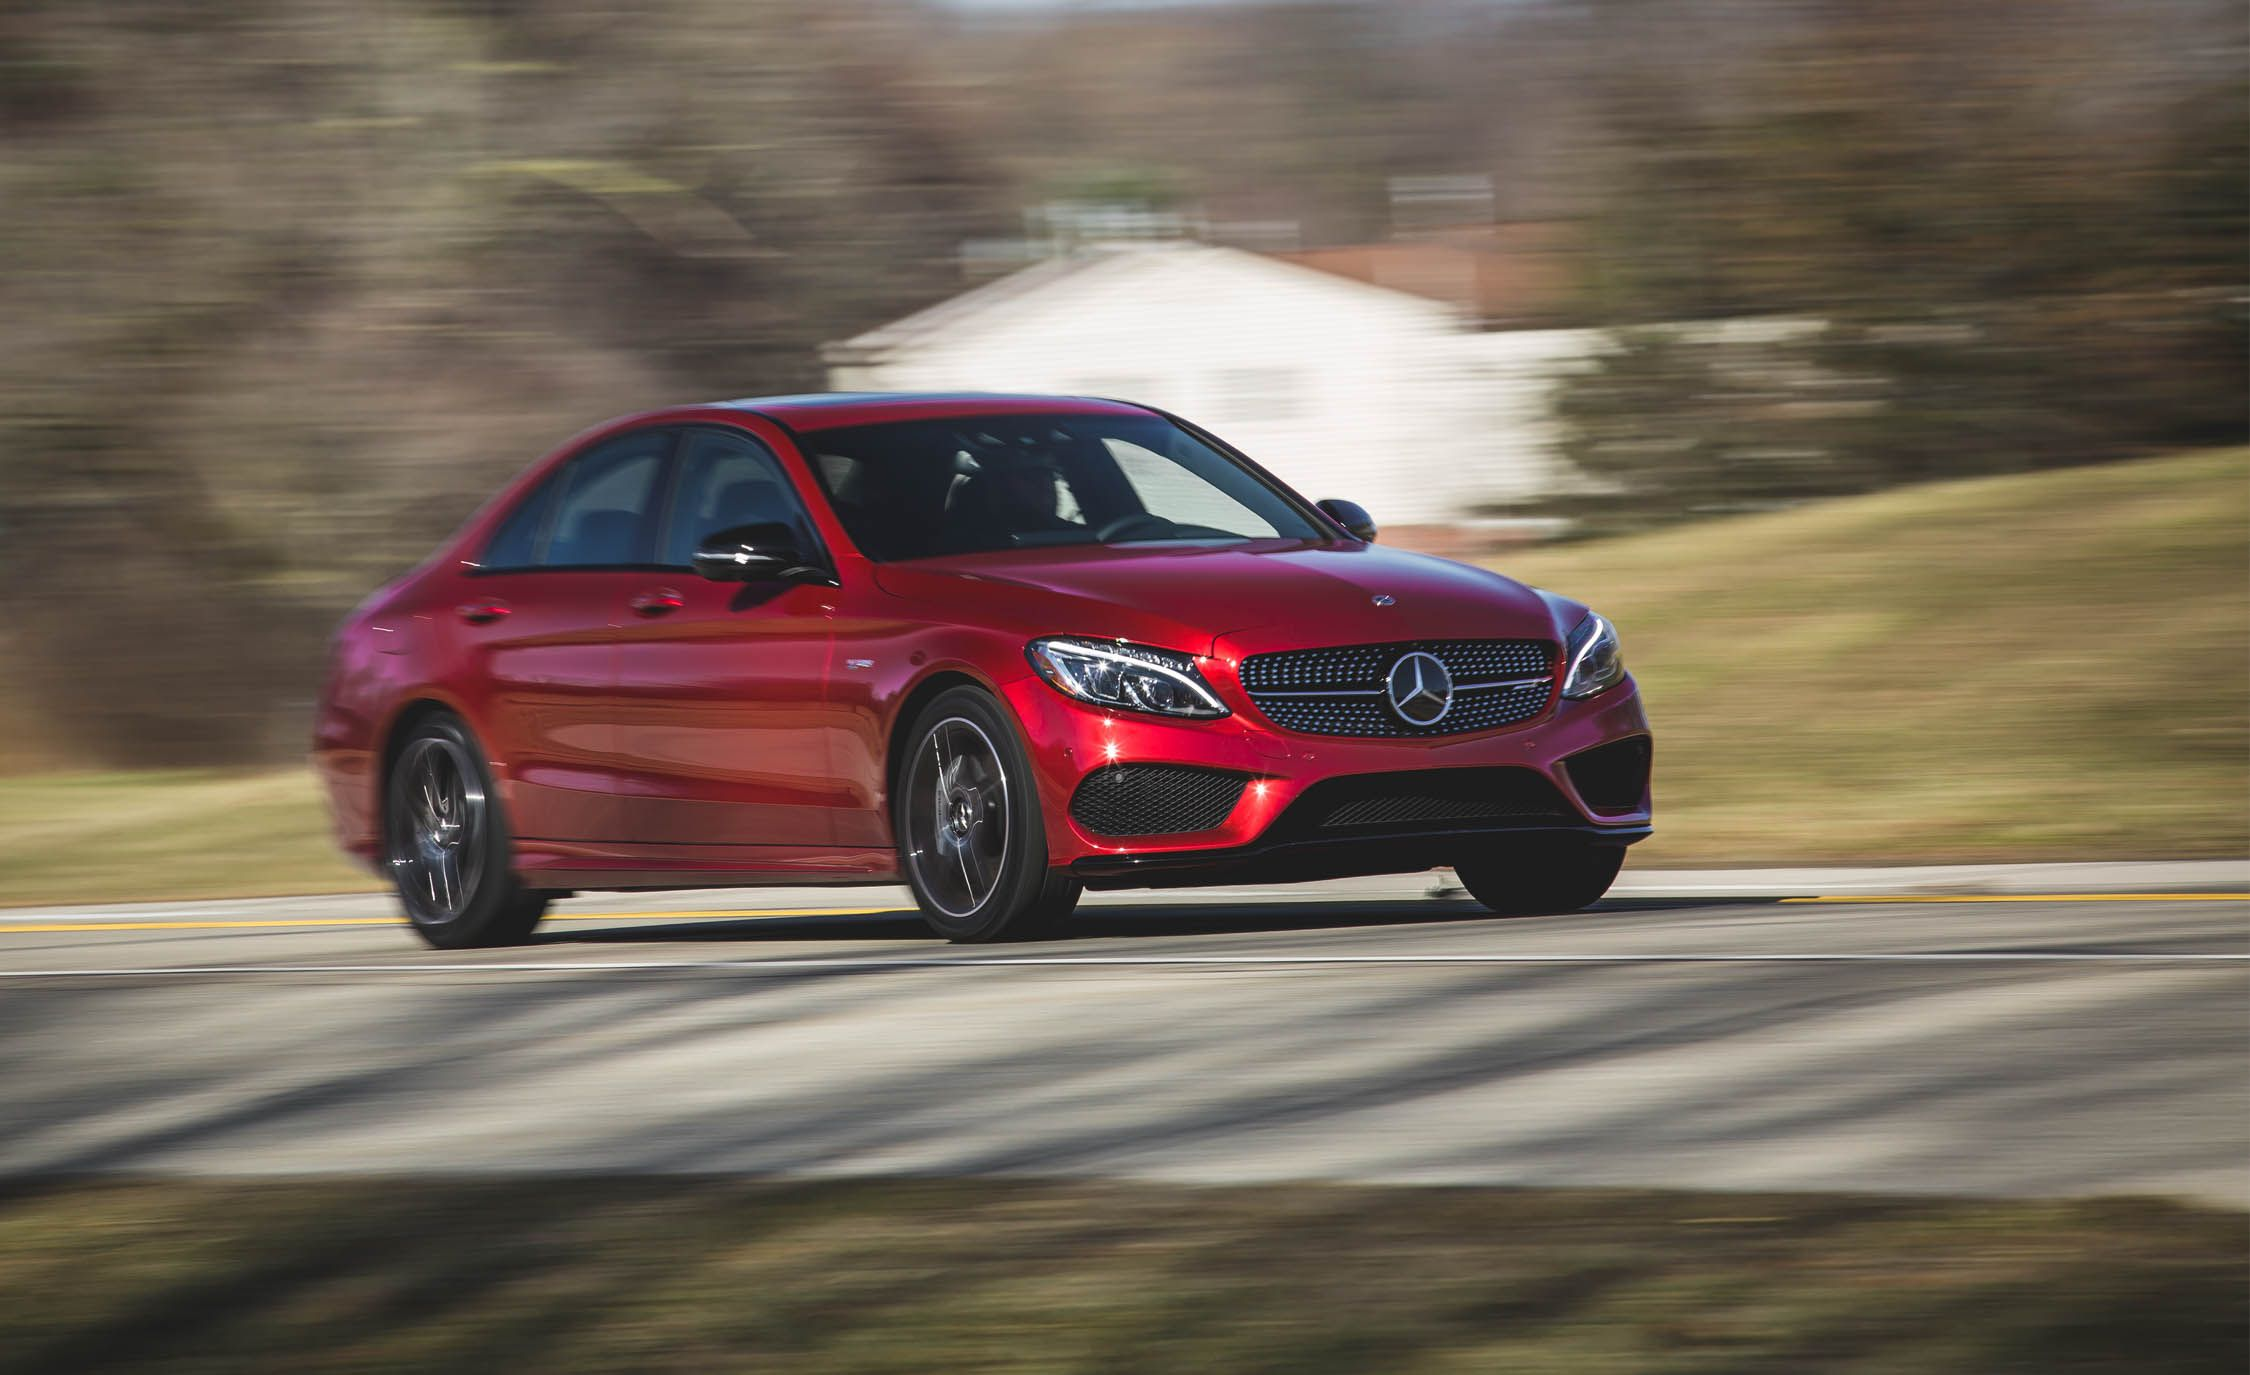 2018 Mercedes AMG C43 Review – Exterior Design and Dimensions – 2018